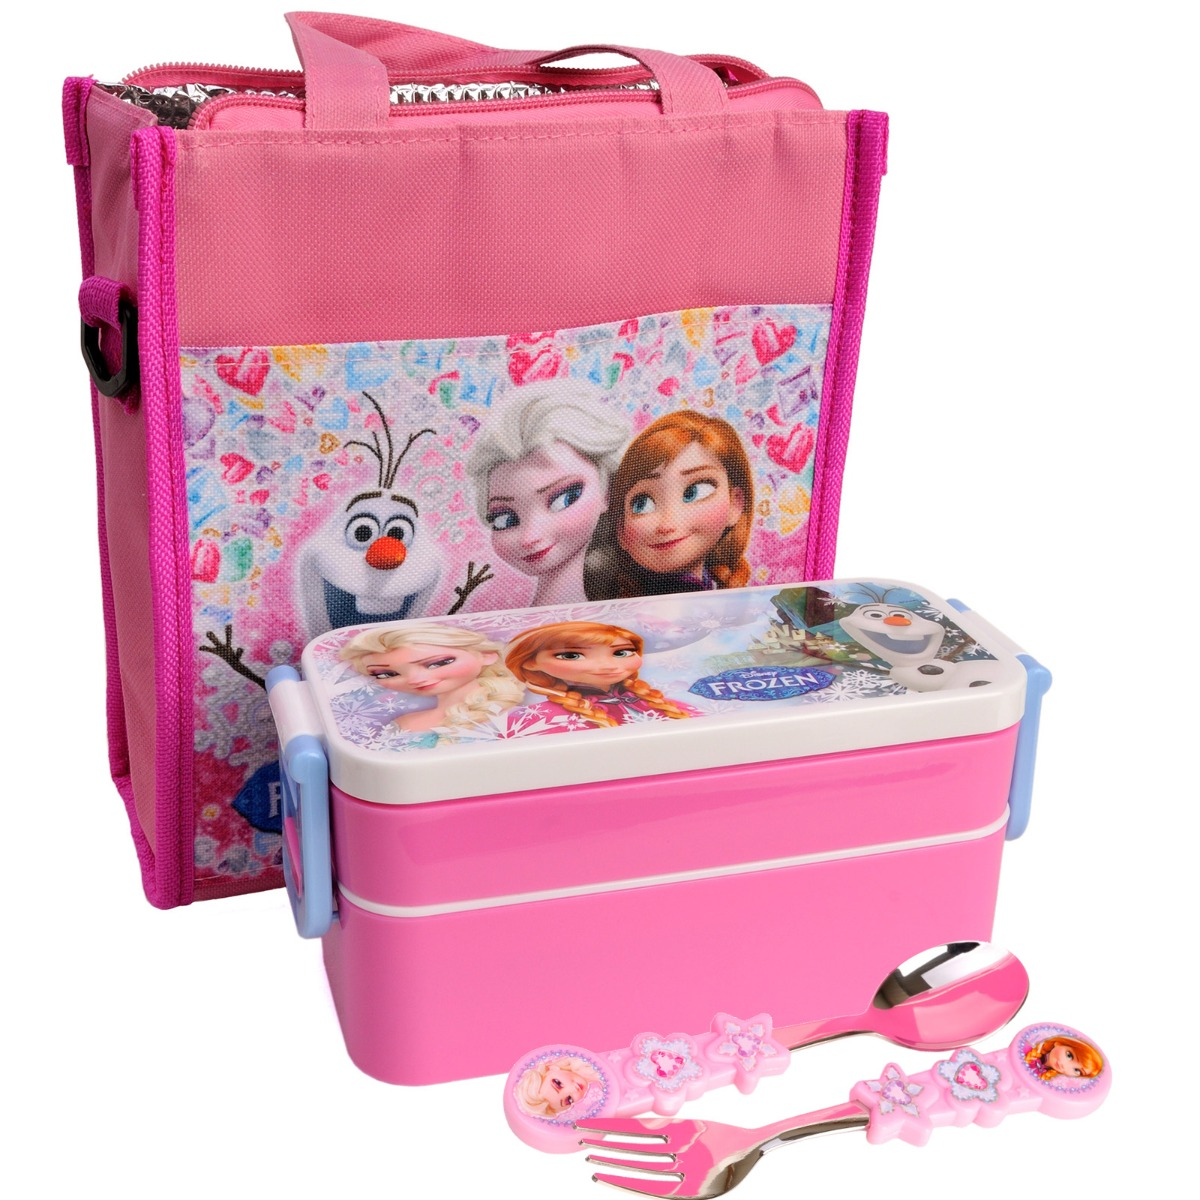 ... Frozen Girls Kids School Picnic Insulated Lunch Box Containers ICE Bag